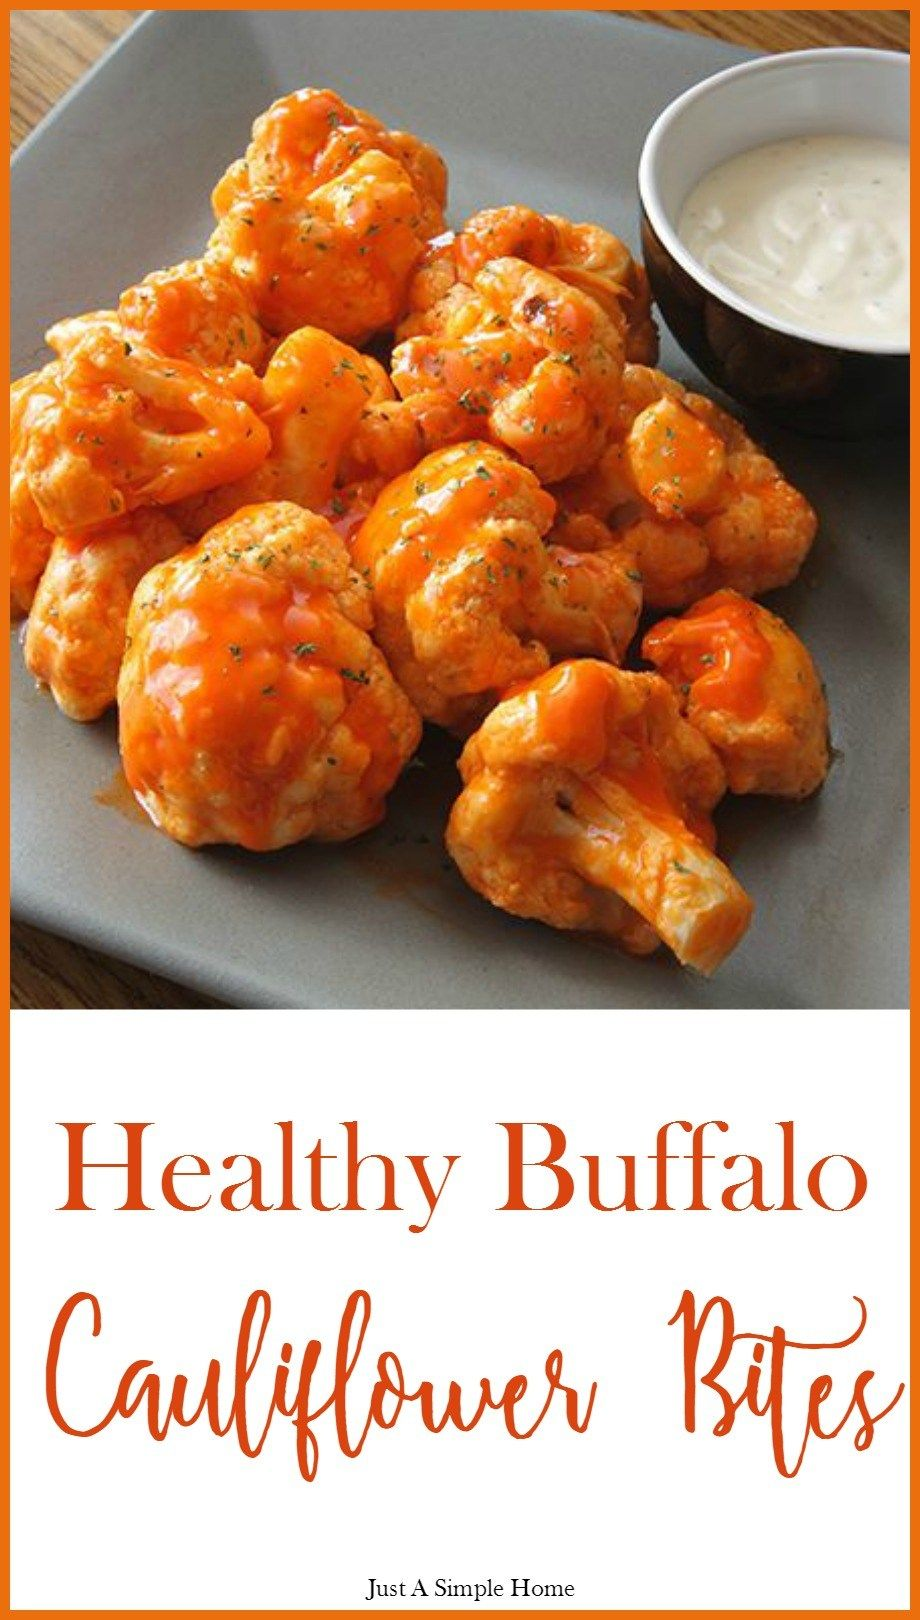 Healthy Buffalo Cauliflower Bites - Just A Simple Home -   18 healthy recipes On The Go clean eating ideas